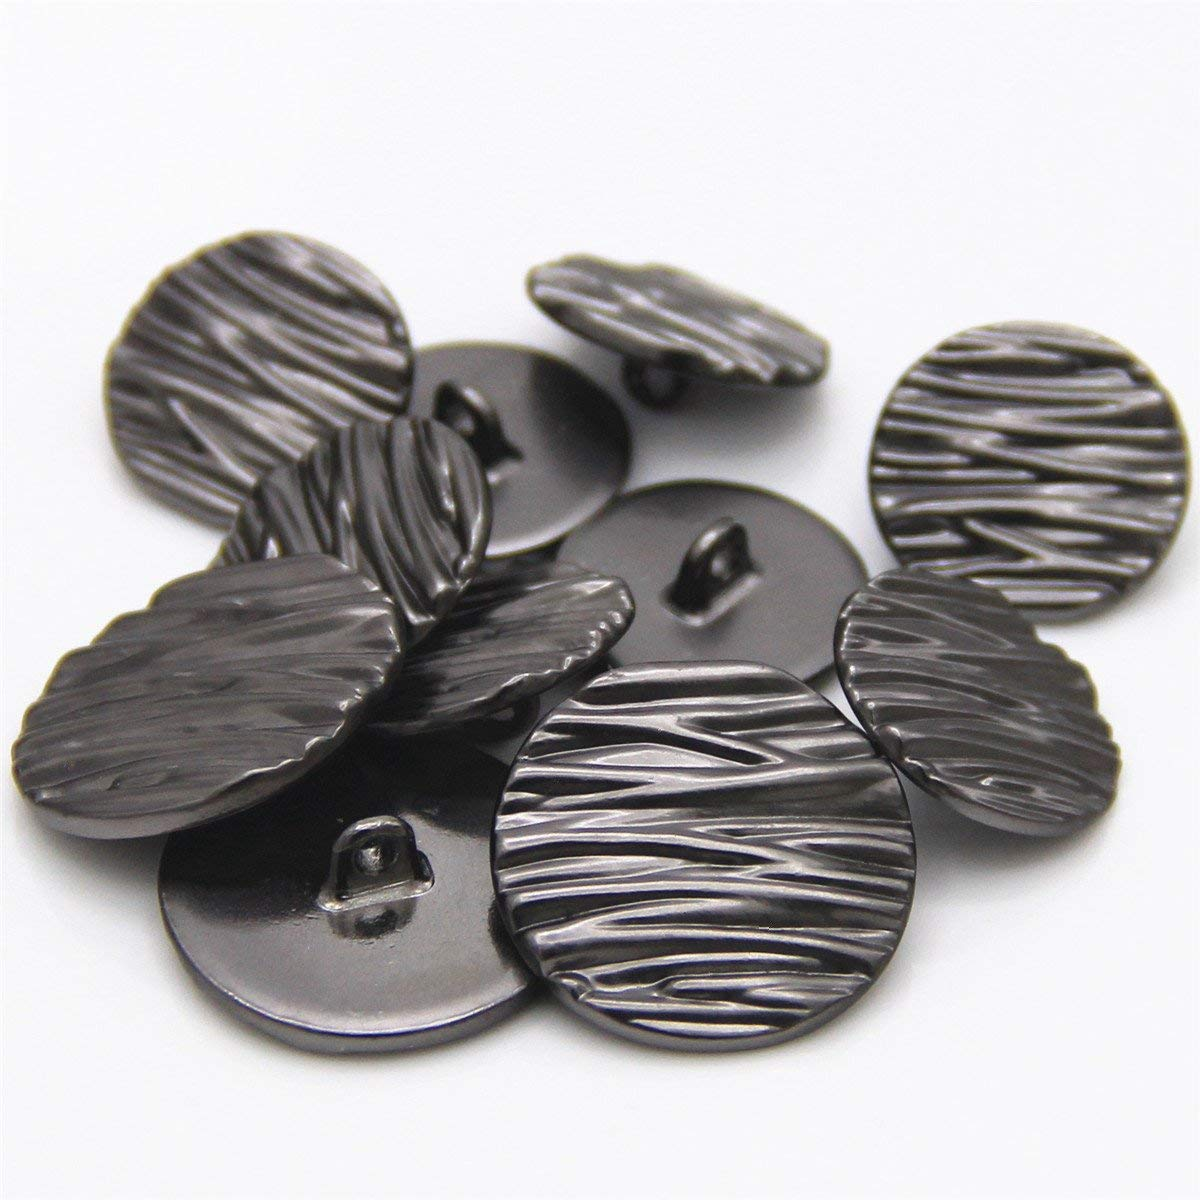 11 Pcs Sewing Metal Shank Buttons 23mm and 18mm Silver Blazer Buttons Set for Suit, Coat, Jacket